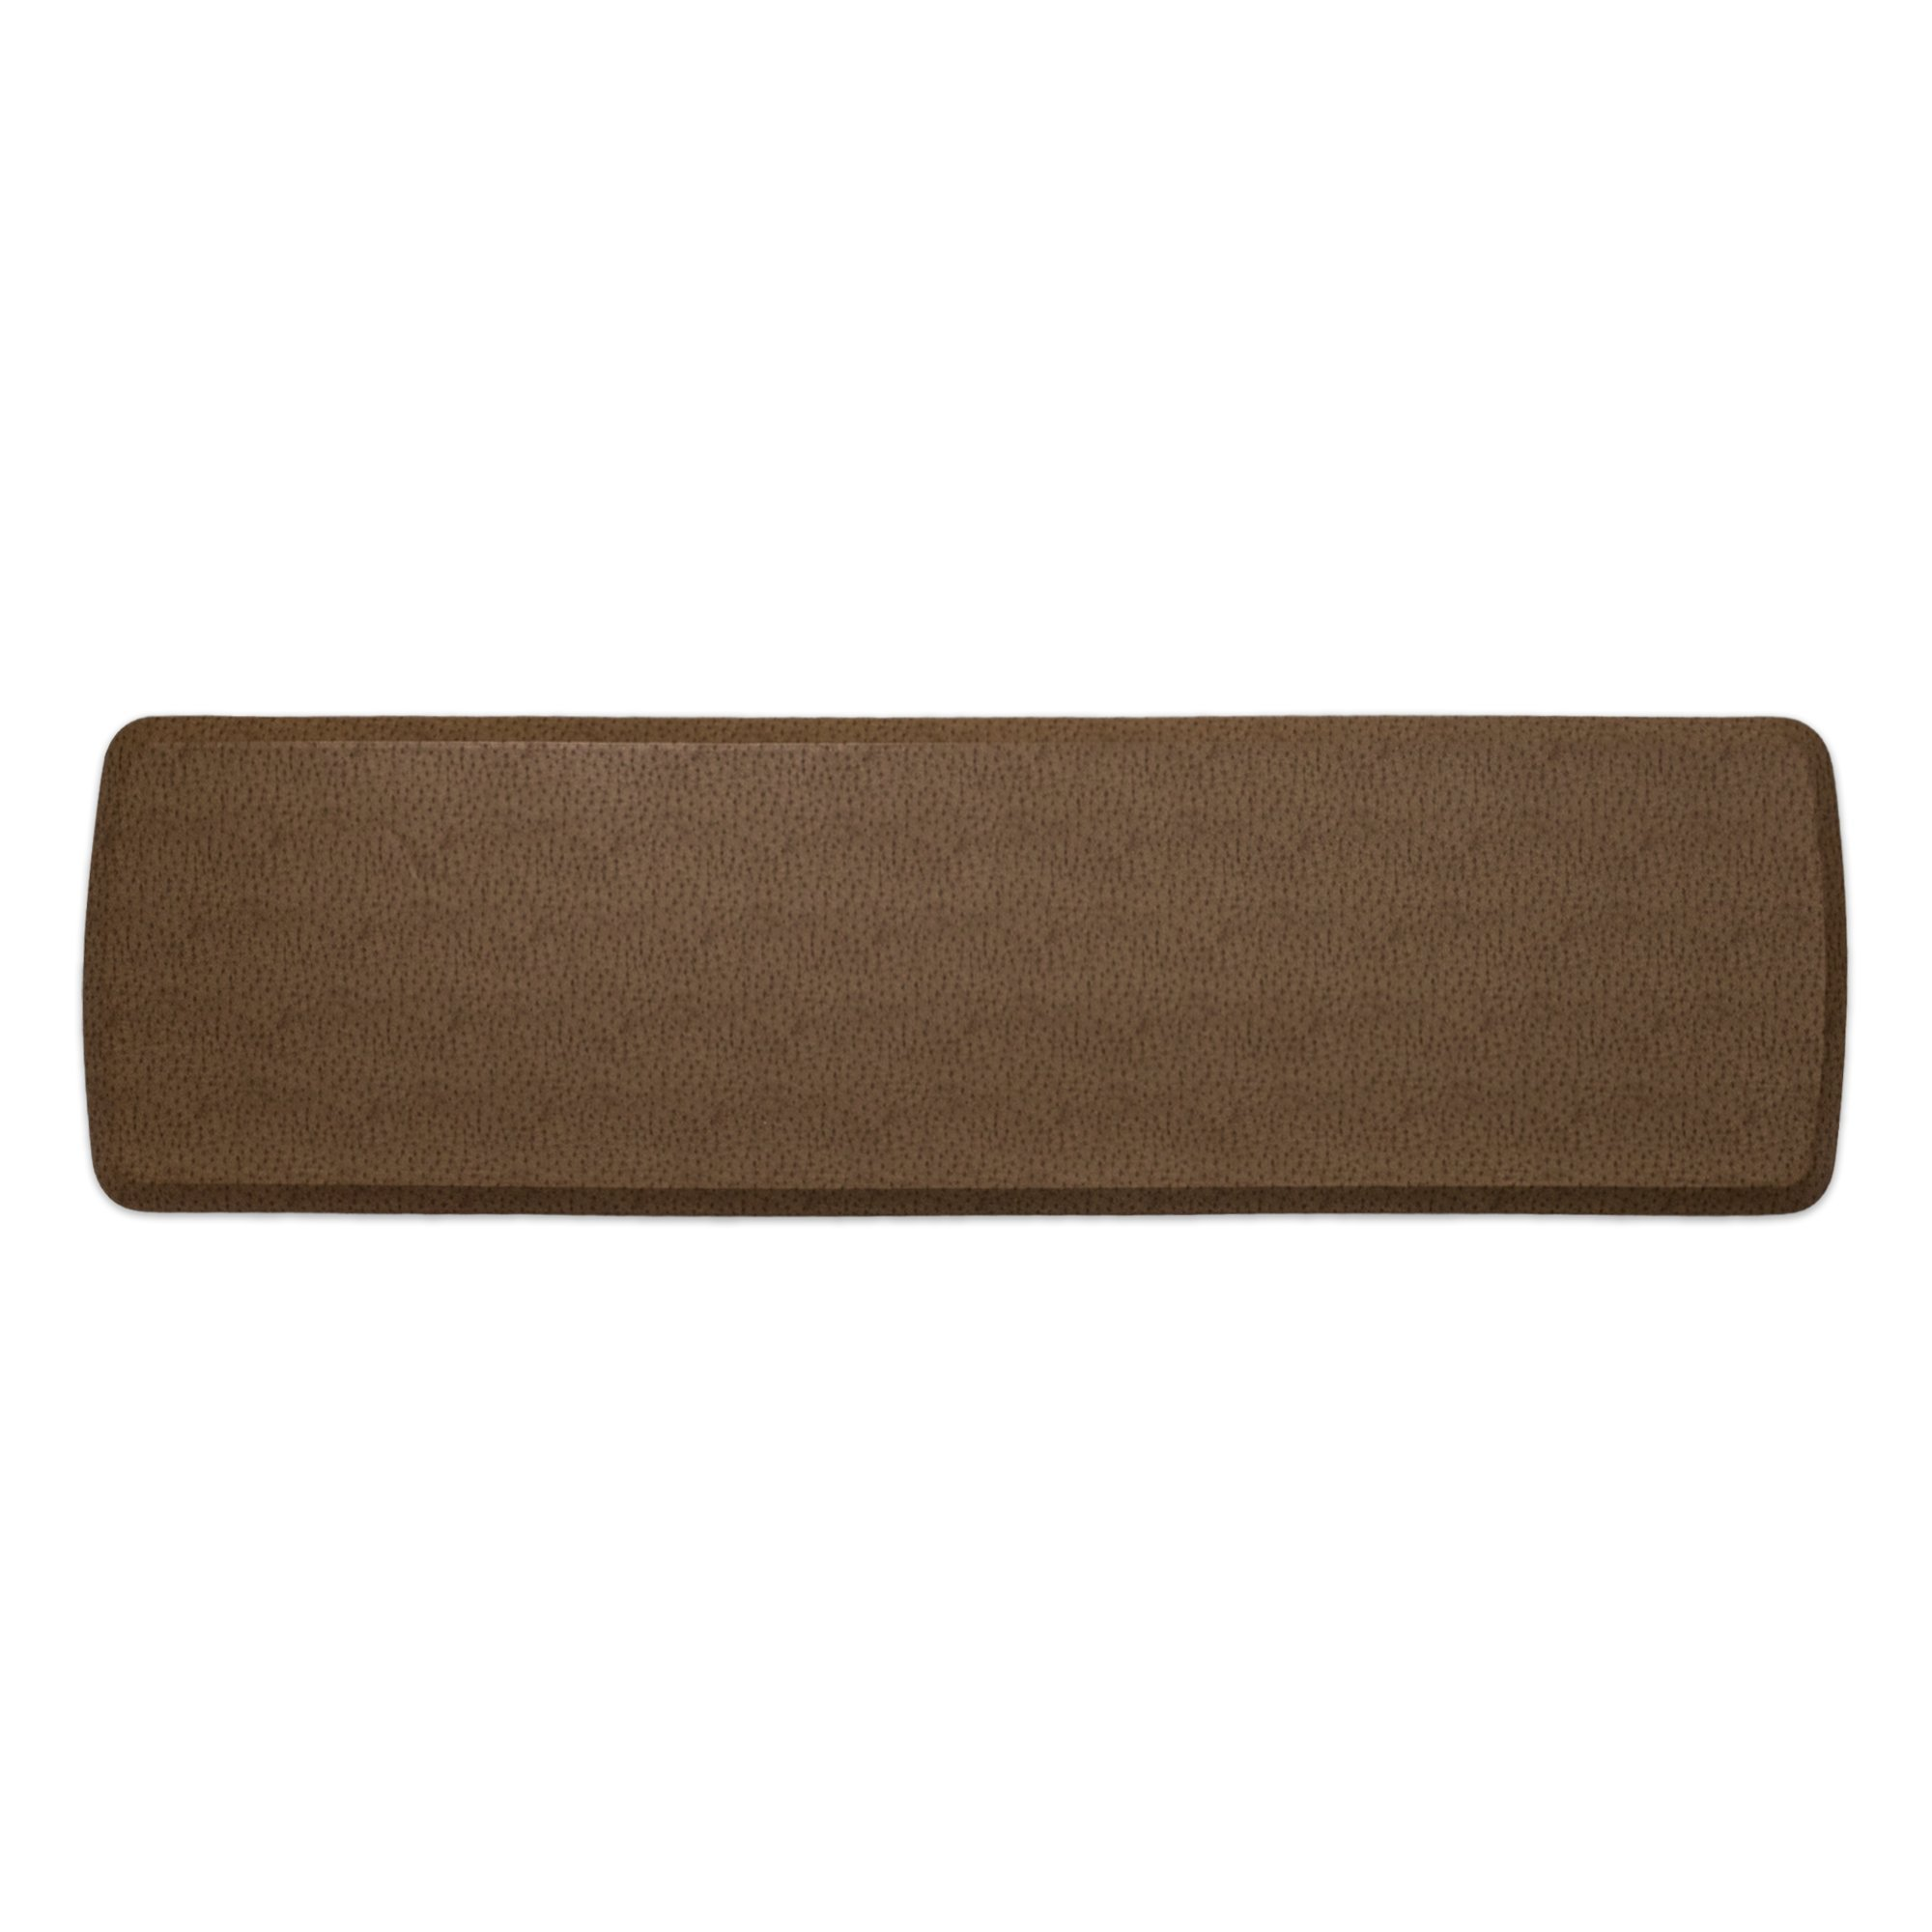 """GelPro Elite Premier Anti-Fatigue Kitchen Comfort Floor Mat, 20x72"""", Quill Toast Stain Resistant Surface with Therapeutic Gel and Energy-return Foam for Health and Wellness"""